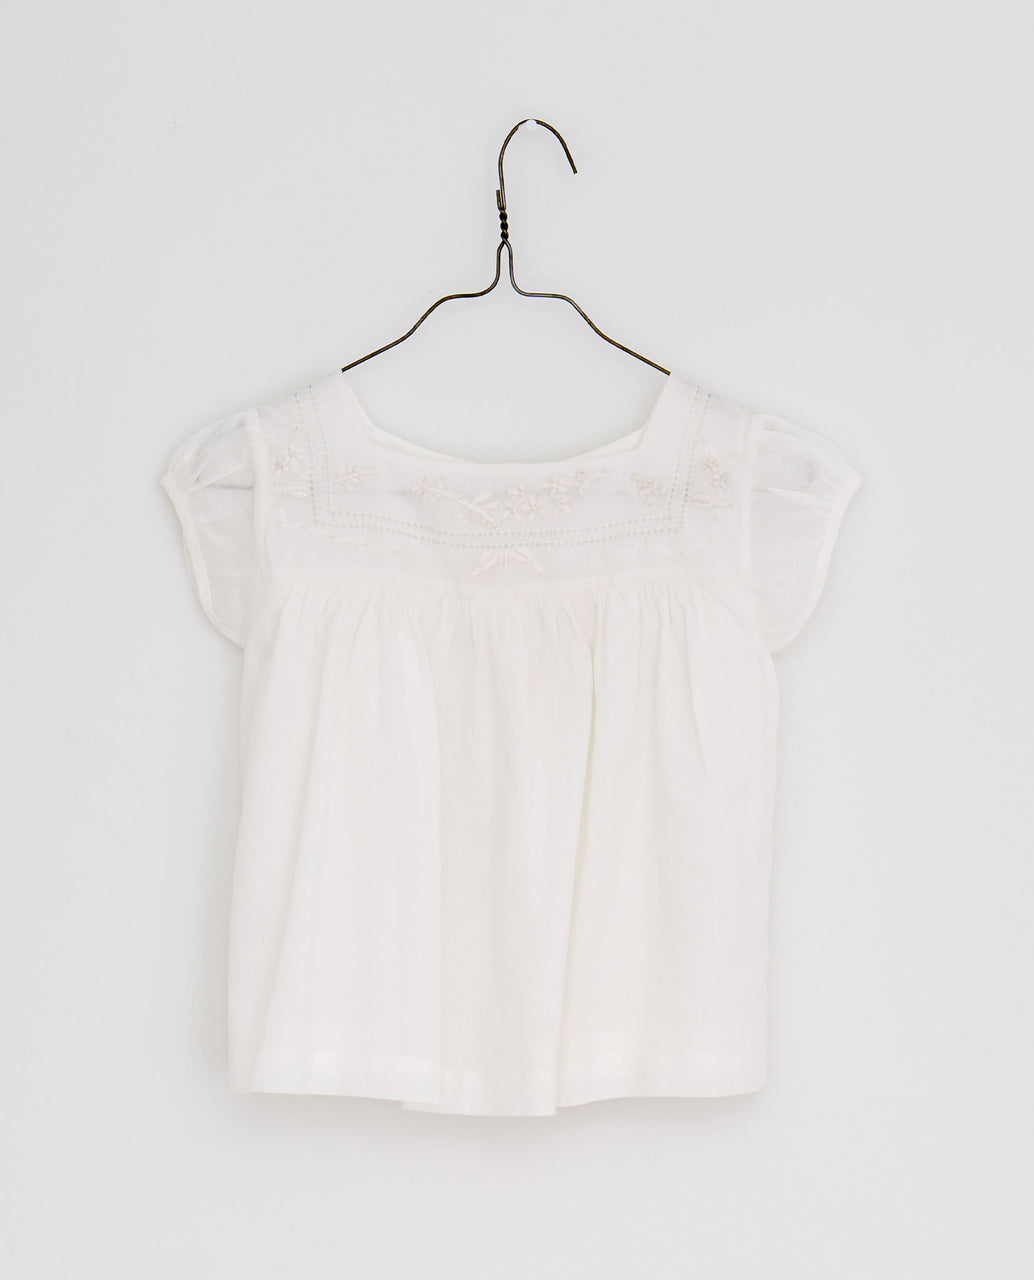 Jocelyn blouse embroidered blouse - off-white voile